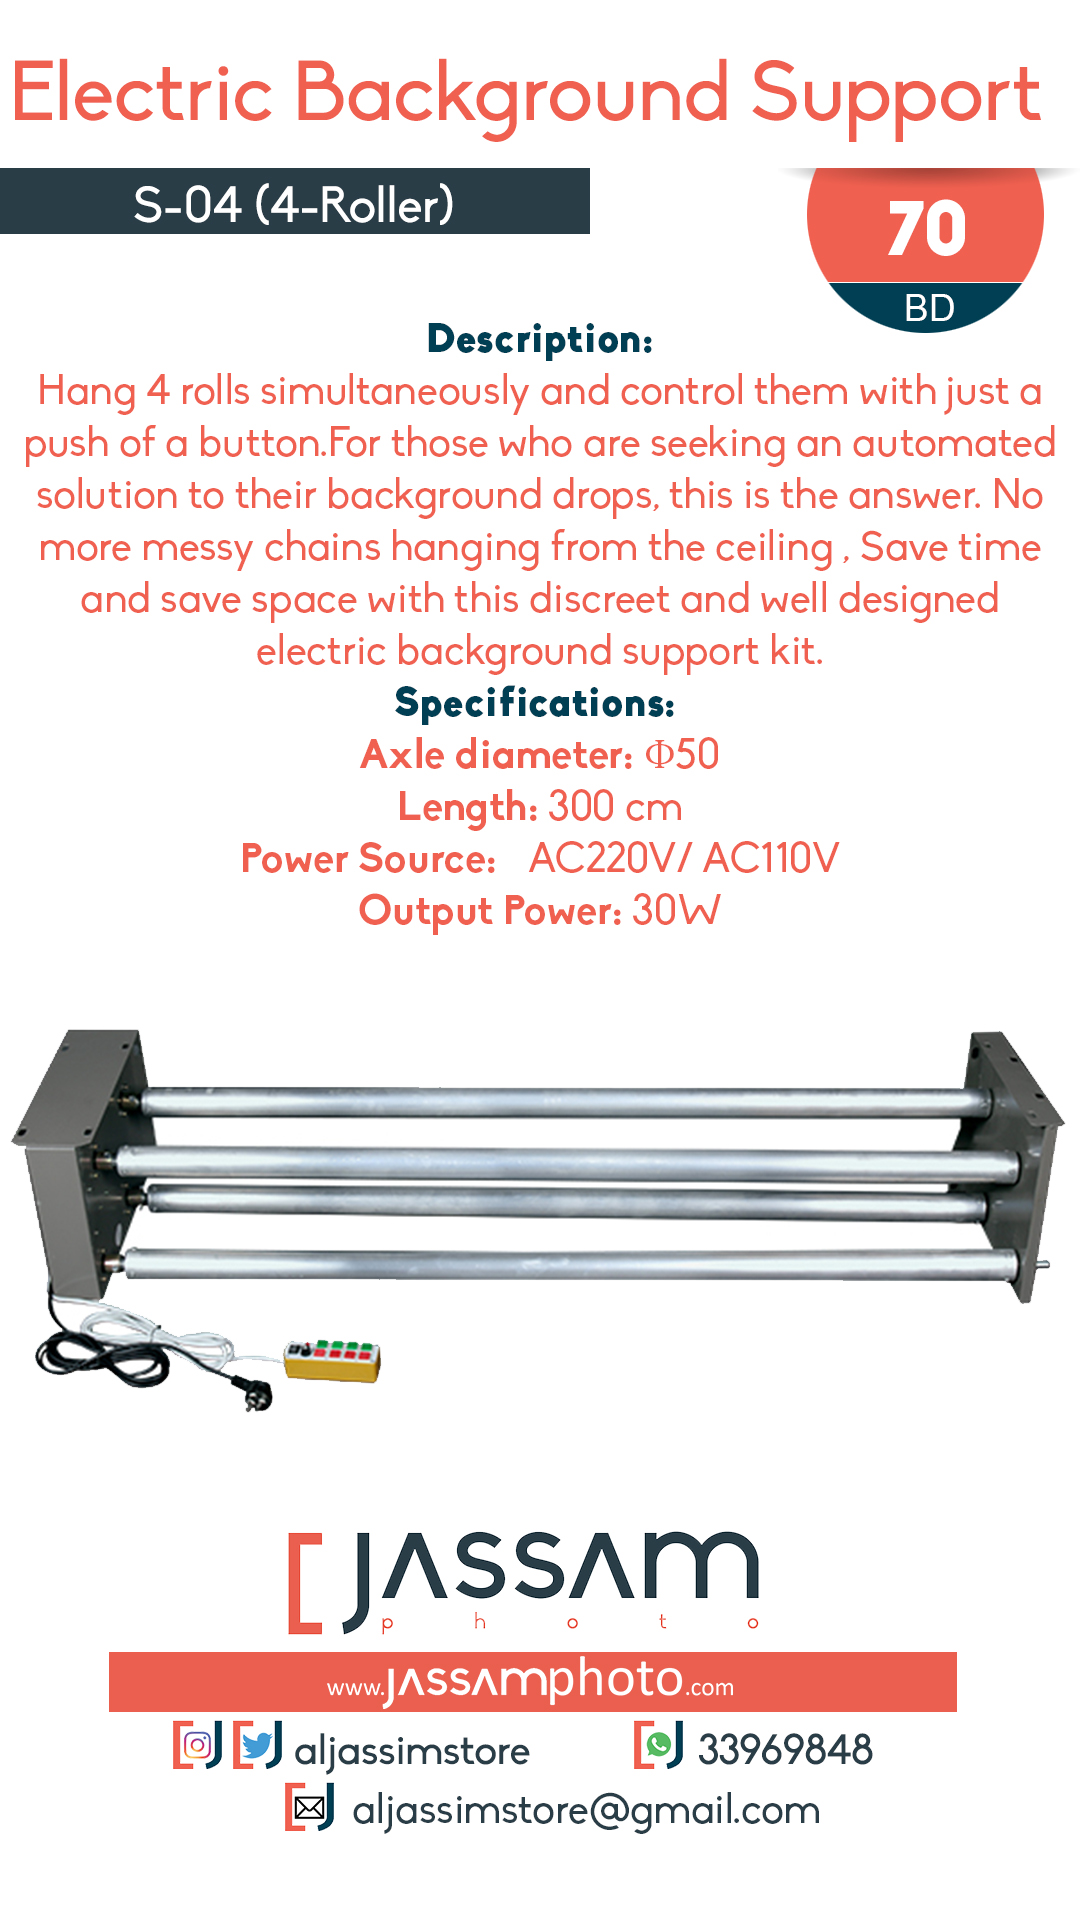 Electric Background Support 4-Roller S-04